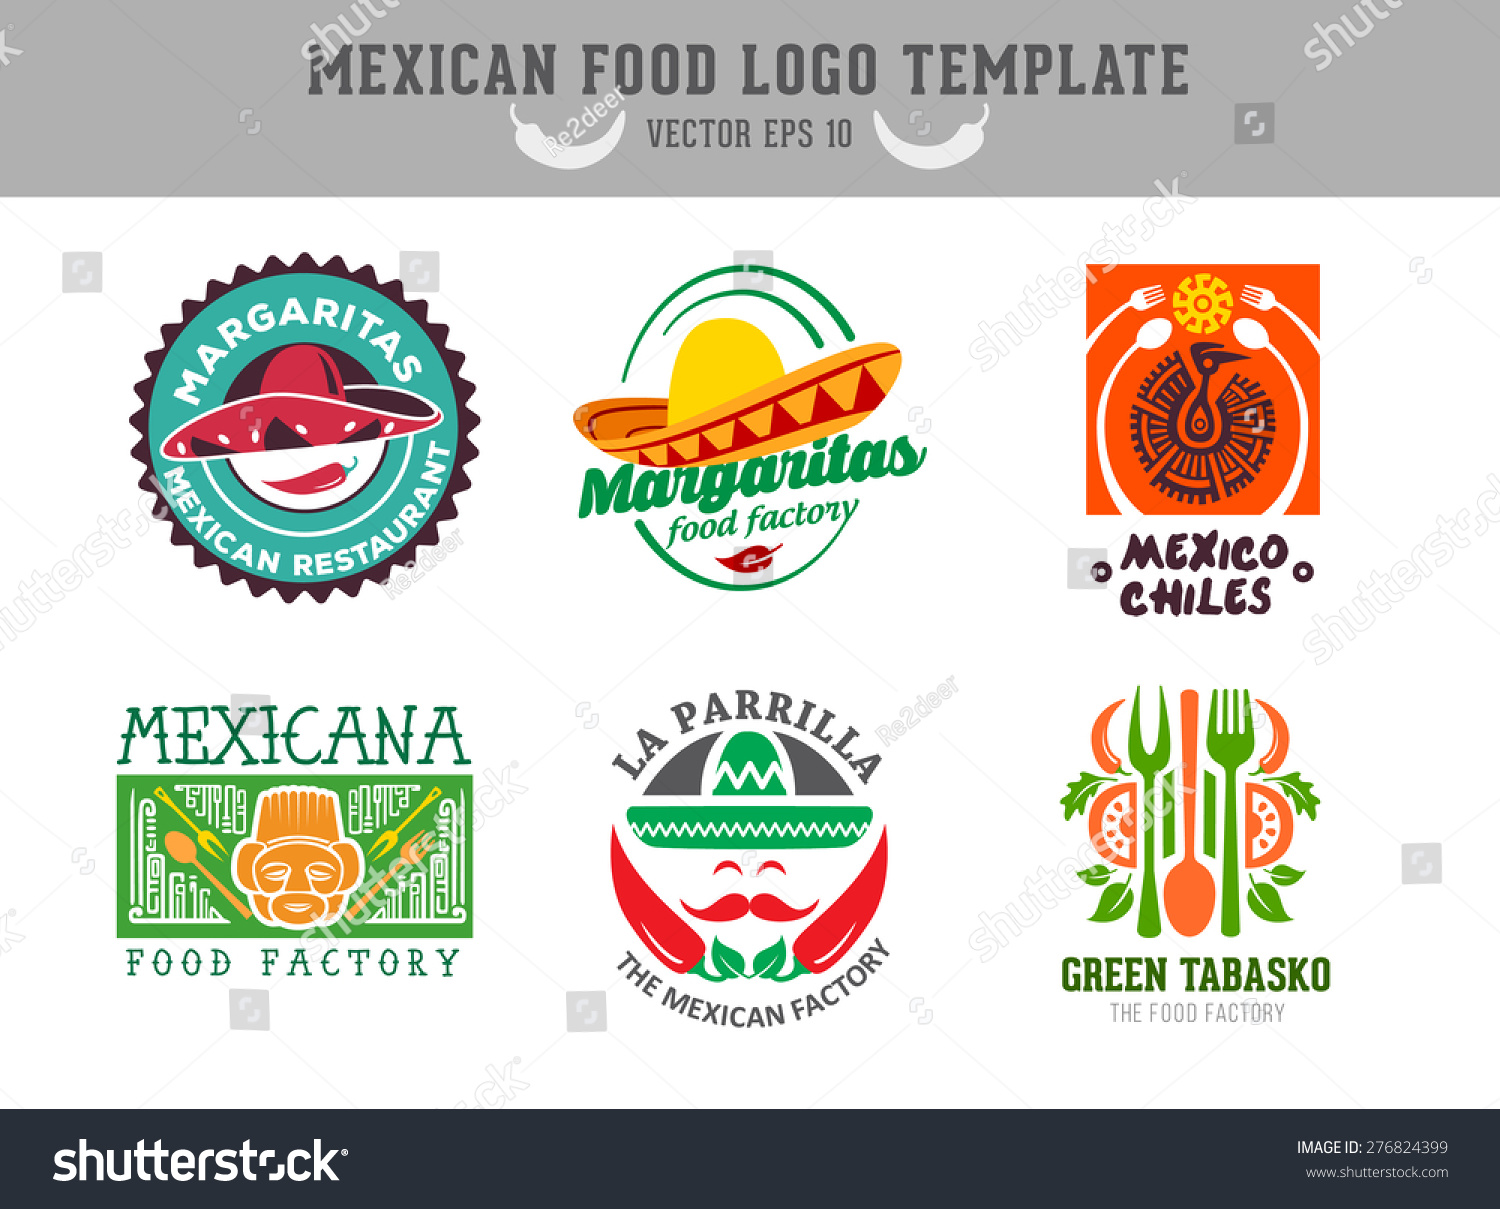 Mexican food logo vector template 276824399 shutterstock for Mexican logos pictures